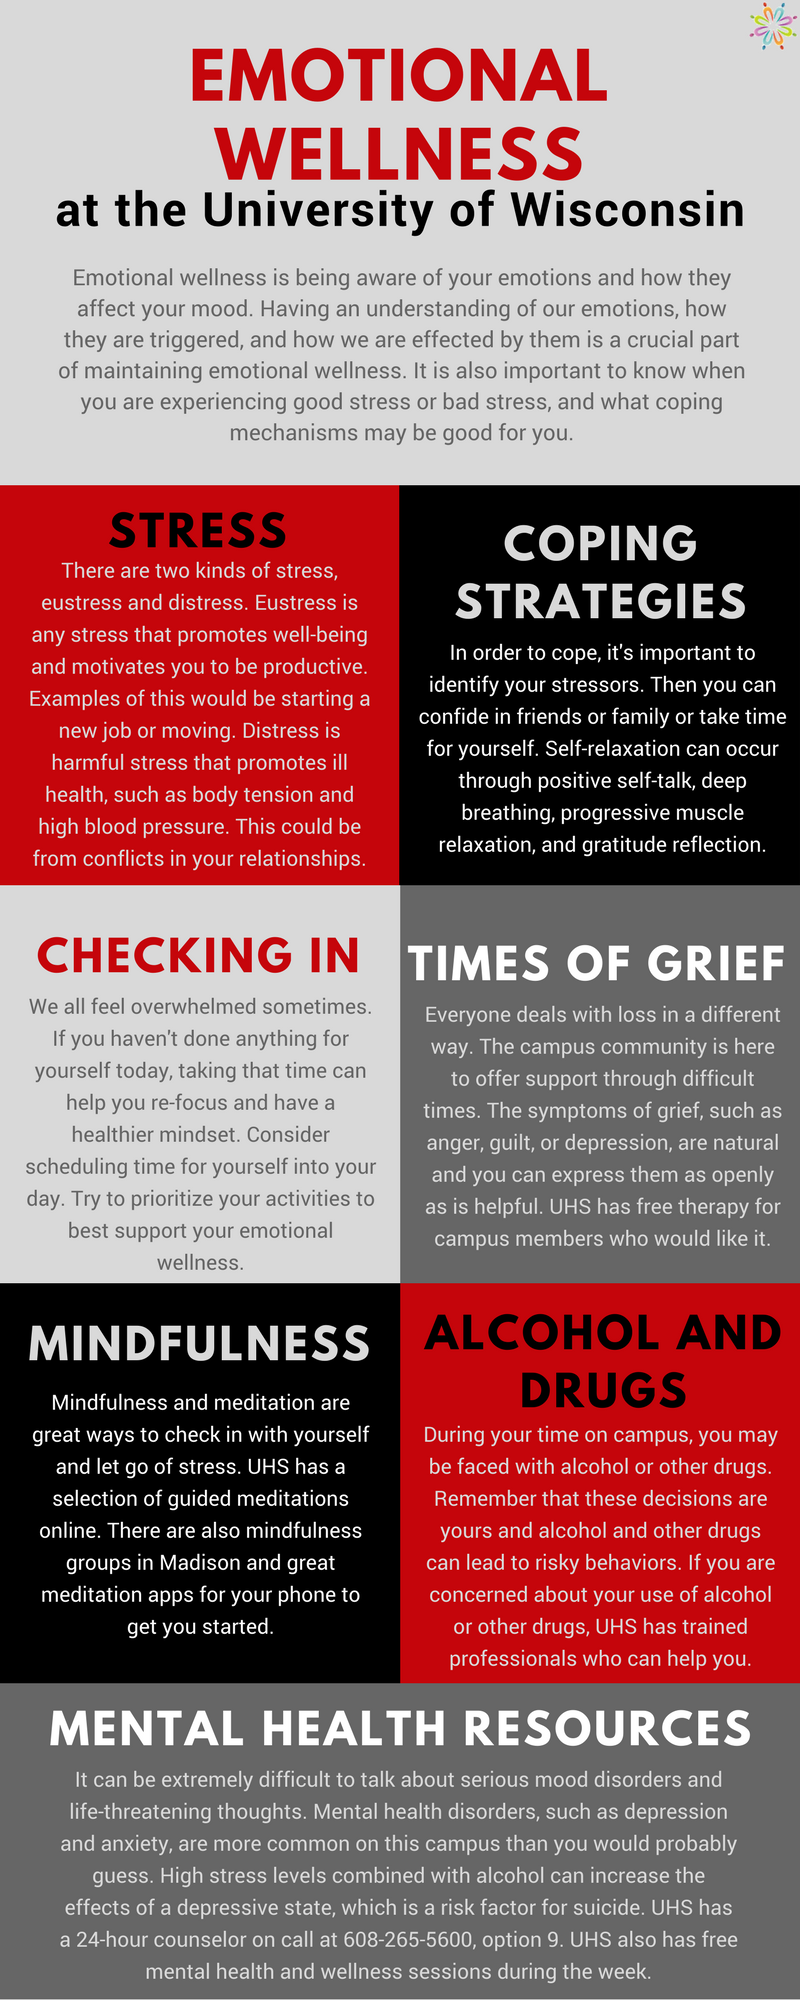 Emotional Wellness - UWell - UW-Madison